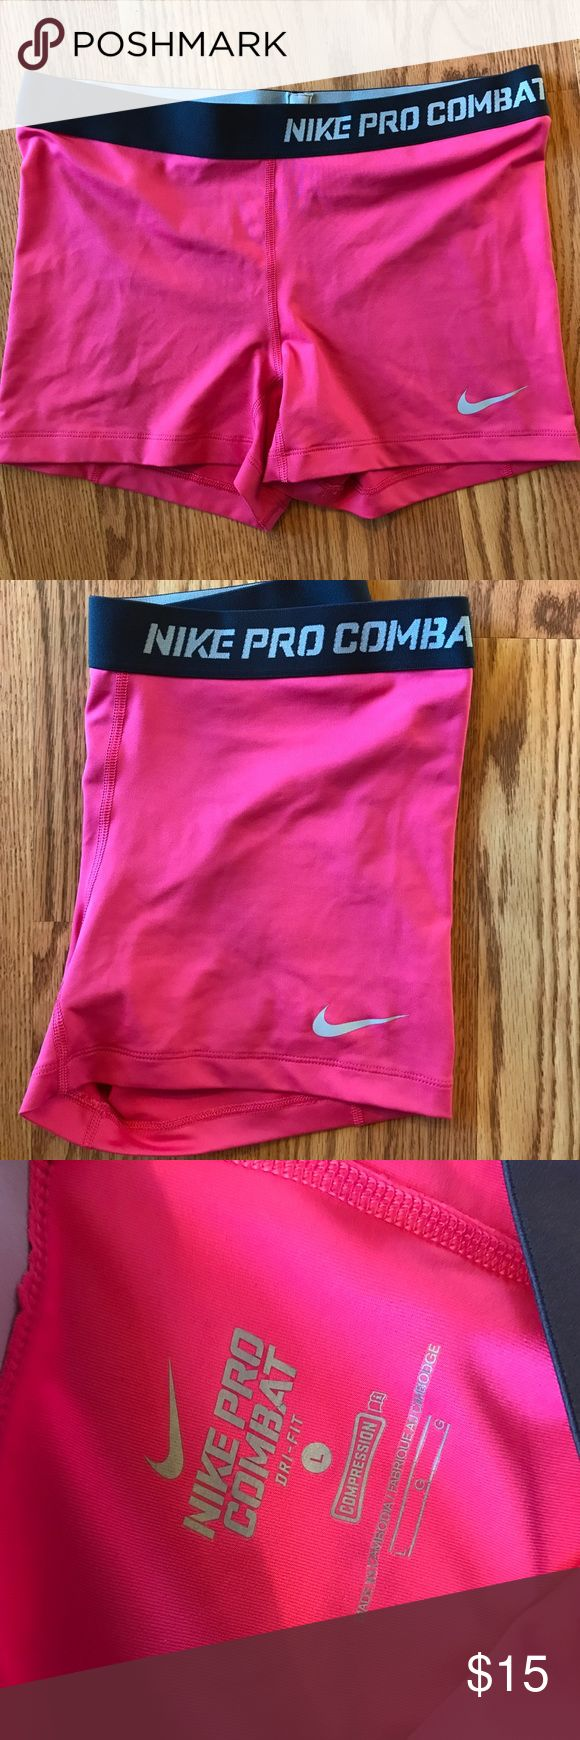 """Nike PRO Shorts Hot pink Nike PRO Combat shorts. 3"""" inseam. Dri-fit. Says """"compression"""" and they're definitely tight/fitted but I wouldn't call them compression compared to other brands. Excellent condition. Super cute for your booty workouts! Nike Shorts"""